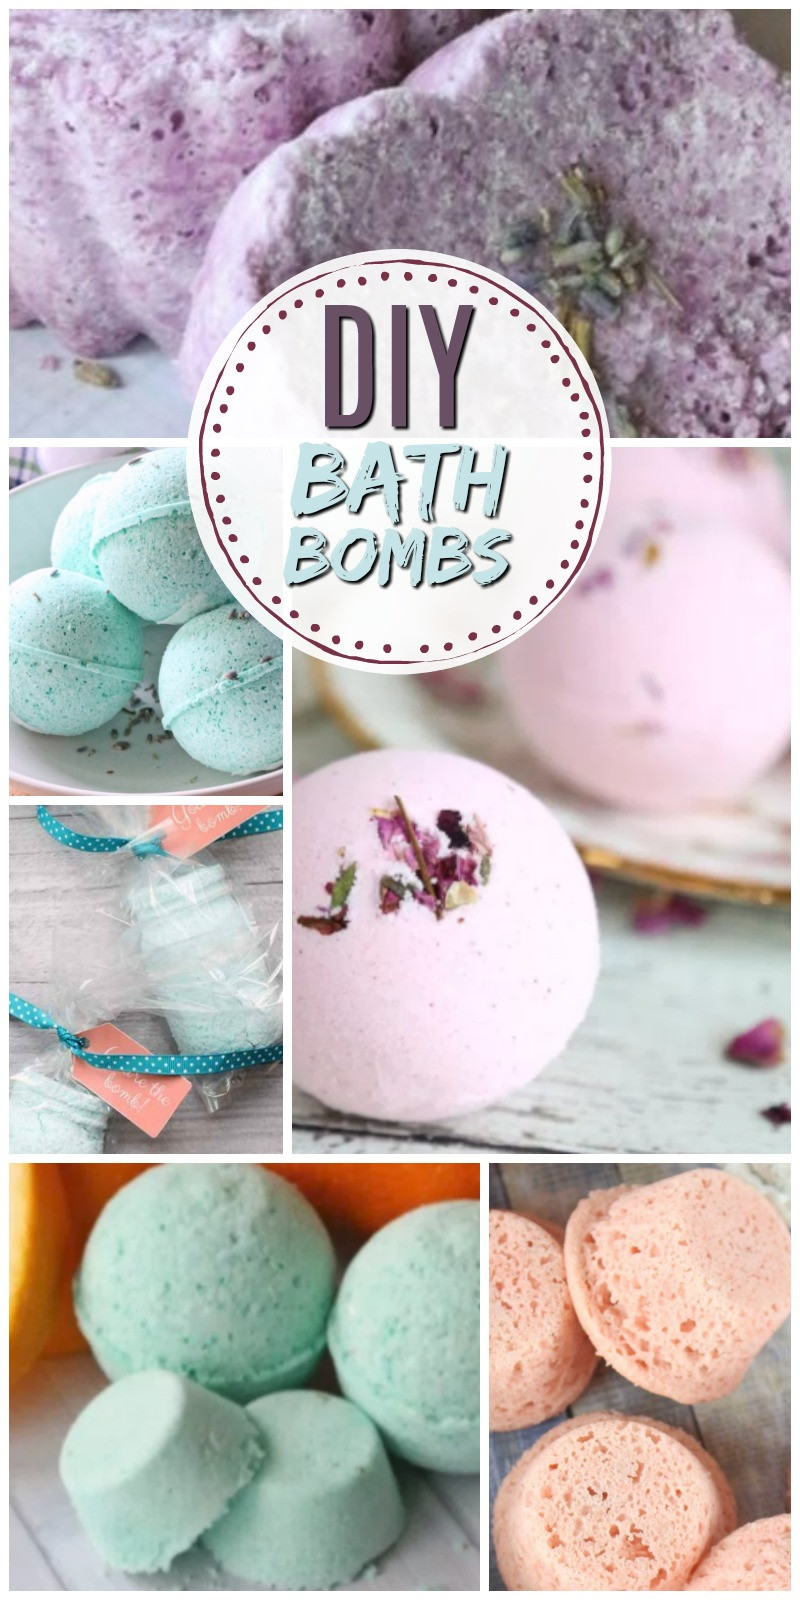 Best ideas about Bath Bombs DIY . Save or Pin The Best DIY Bath Bomb Recipes to Make Yourself Creative Now.